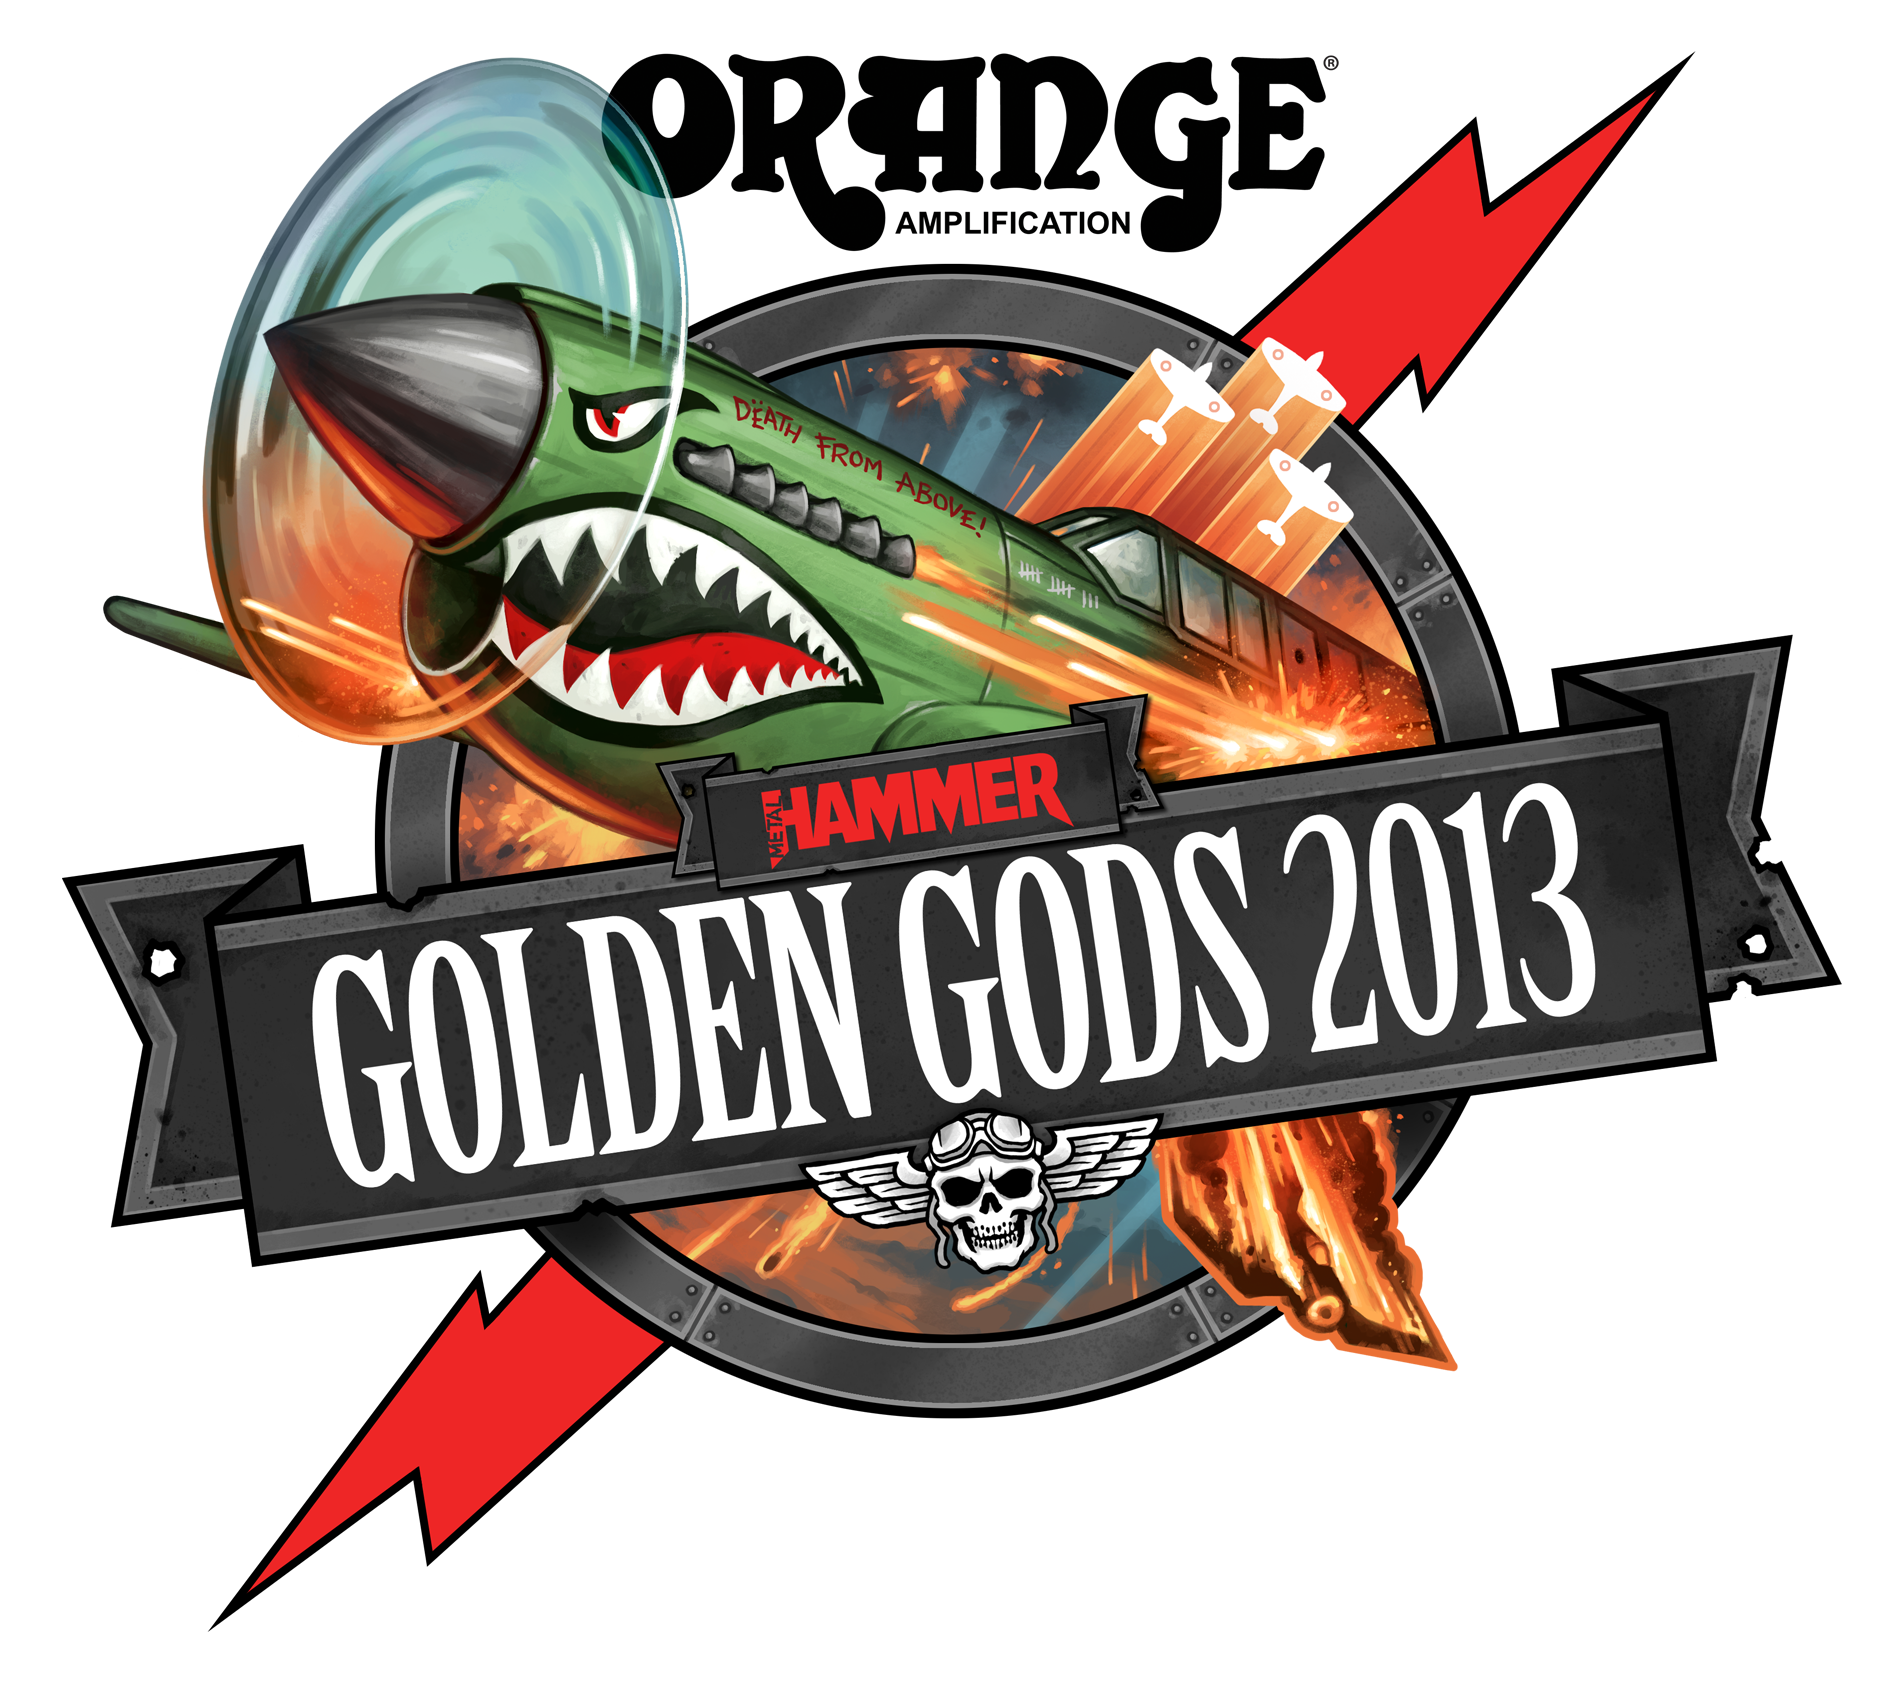 2013 Golden Gods logo